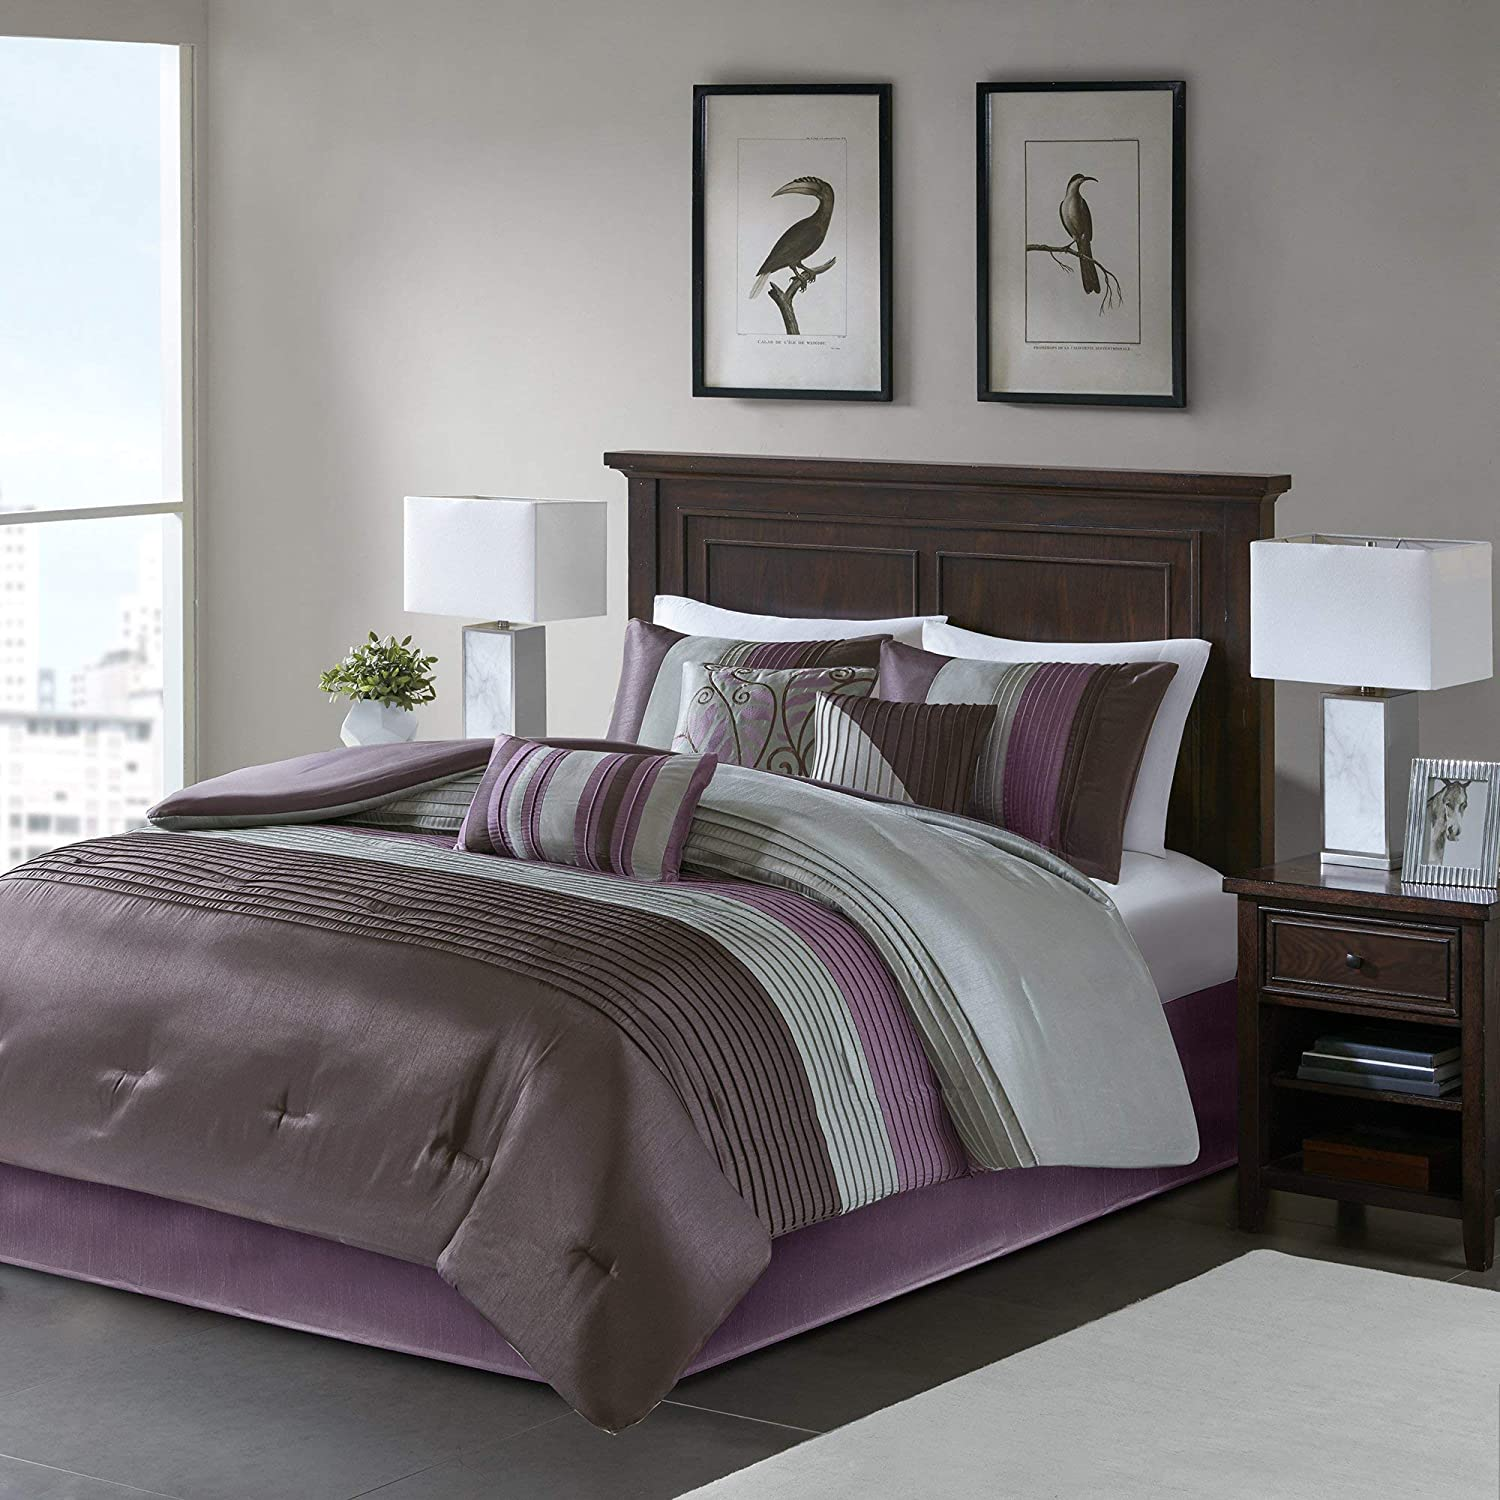 Madison Park Amherst Queen Size Bed Comforter Set Bed in A Bag - Purple,  Grey, Pieced Stripes – 7 Pieces Bedding Sets – Ultra Soft Microfiber  Bedroom ...